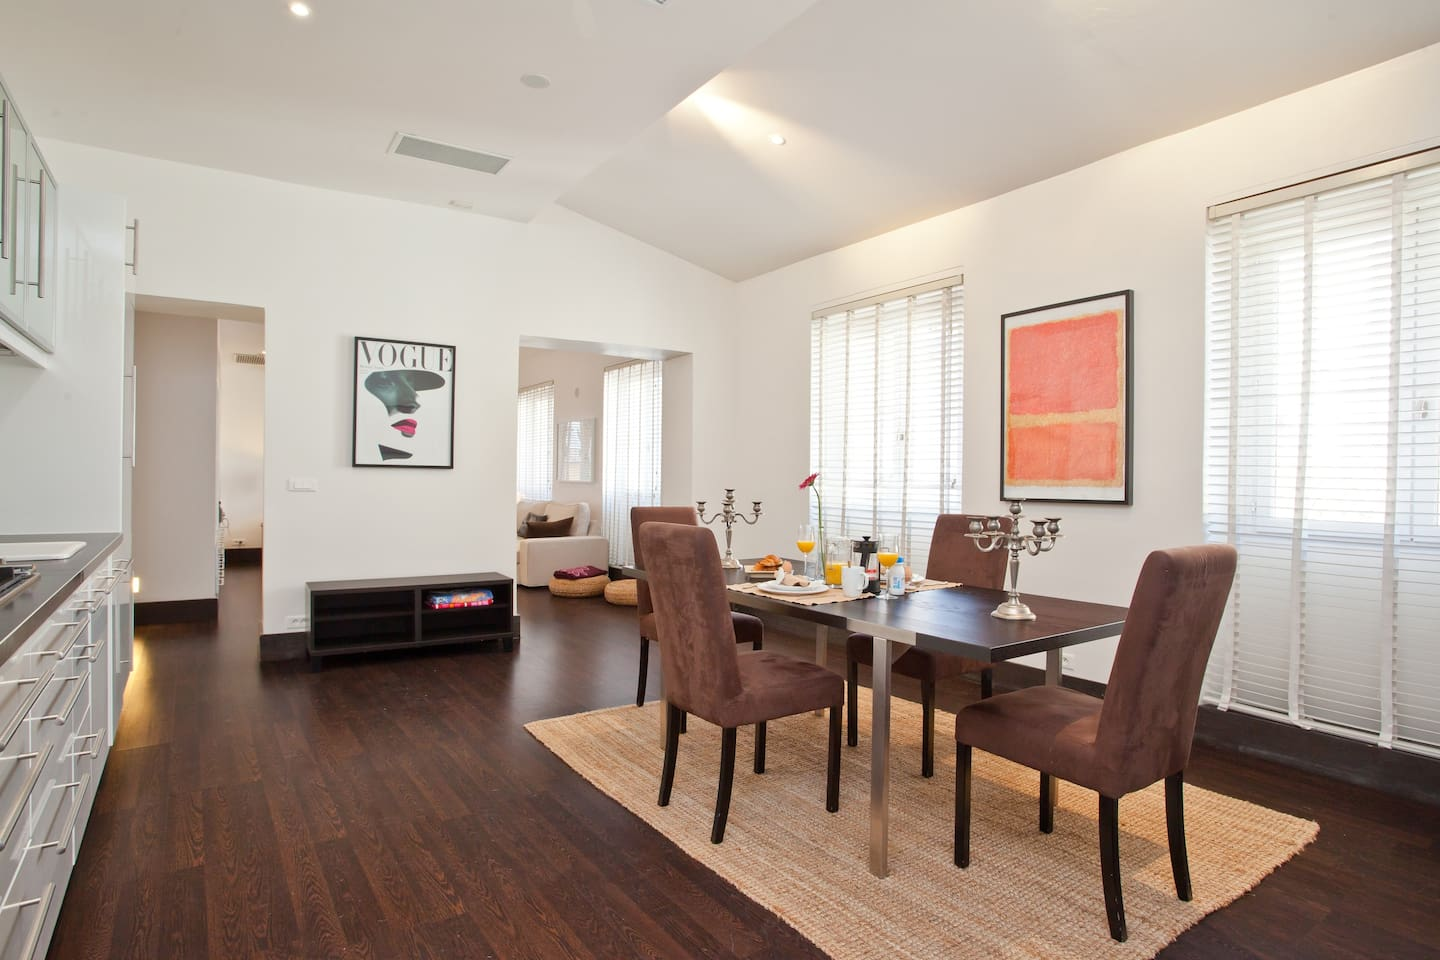 Bright, airy, enormous fully equipped kitchen & dining room